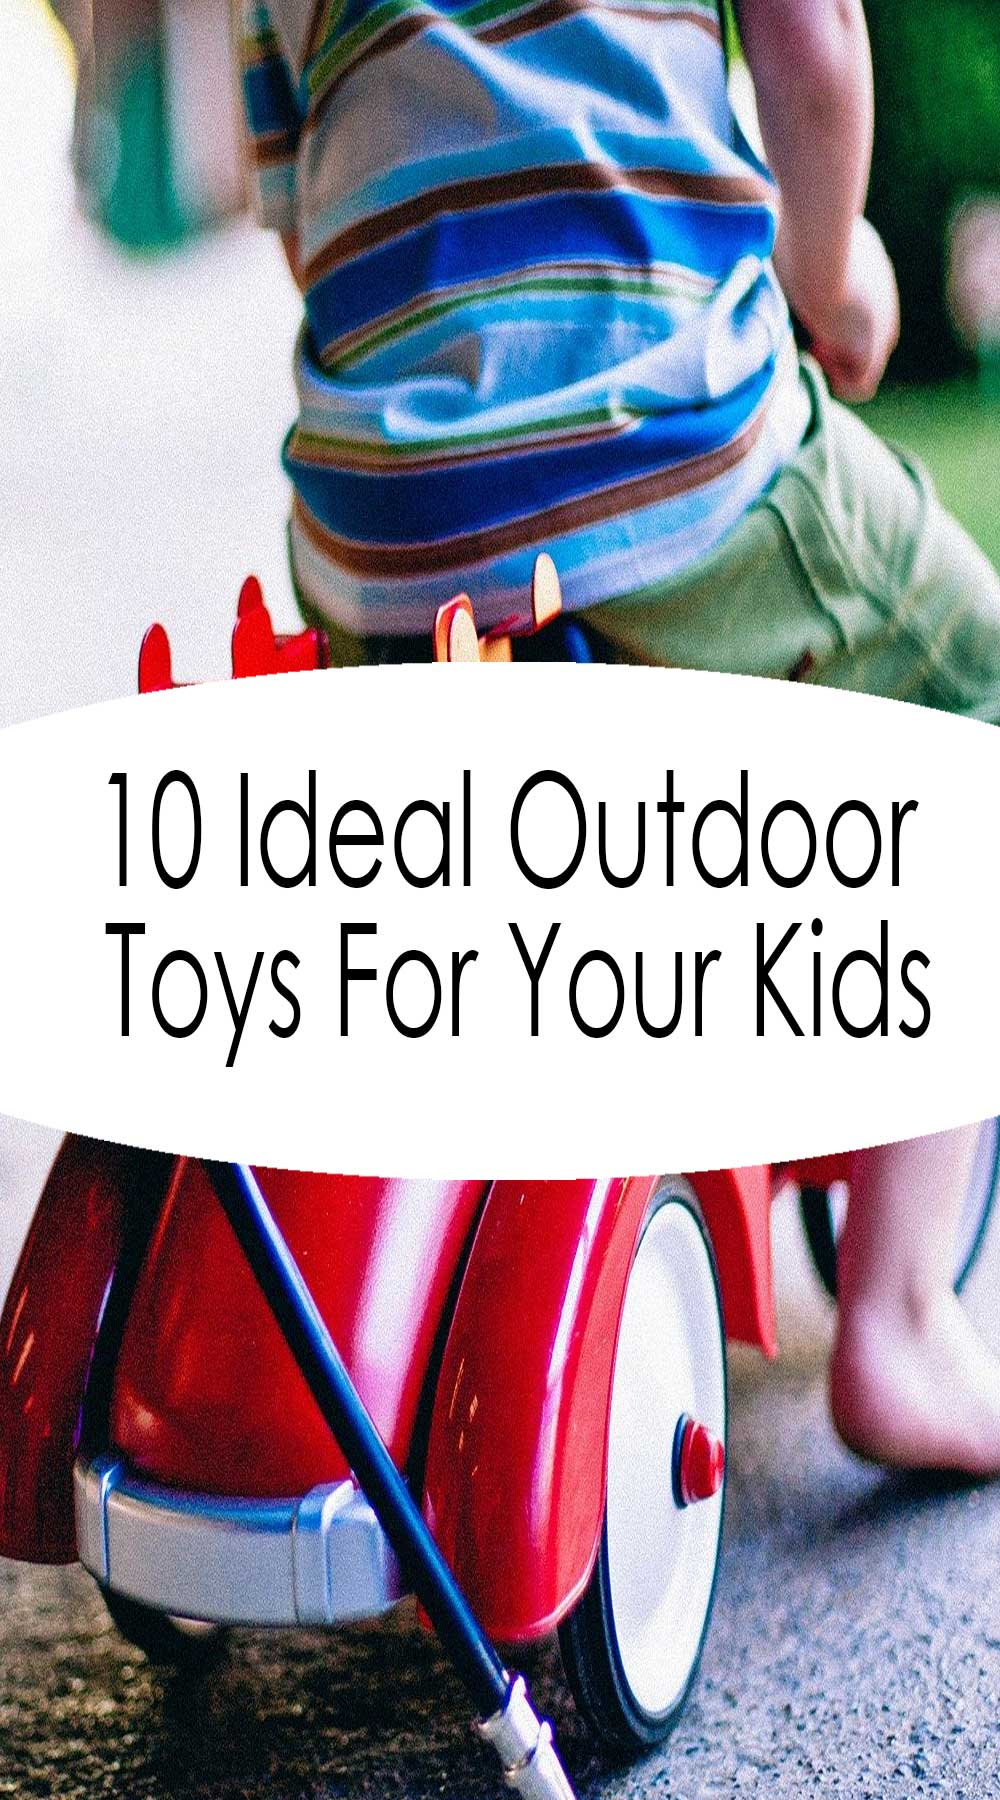 10 Ideal Outdoor Toys For Your Kids